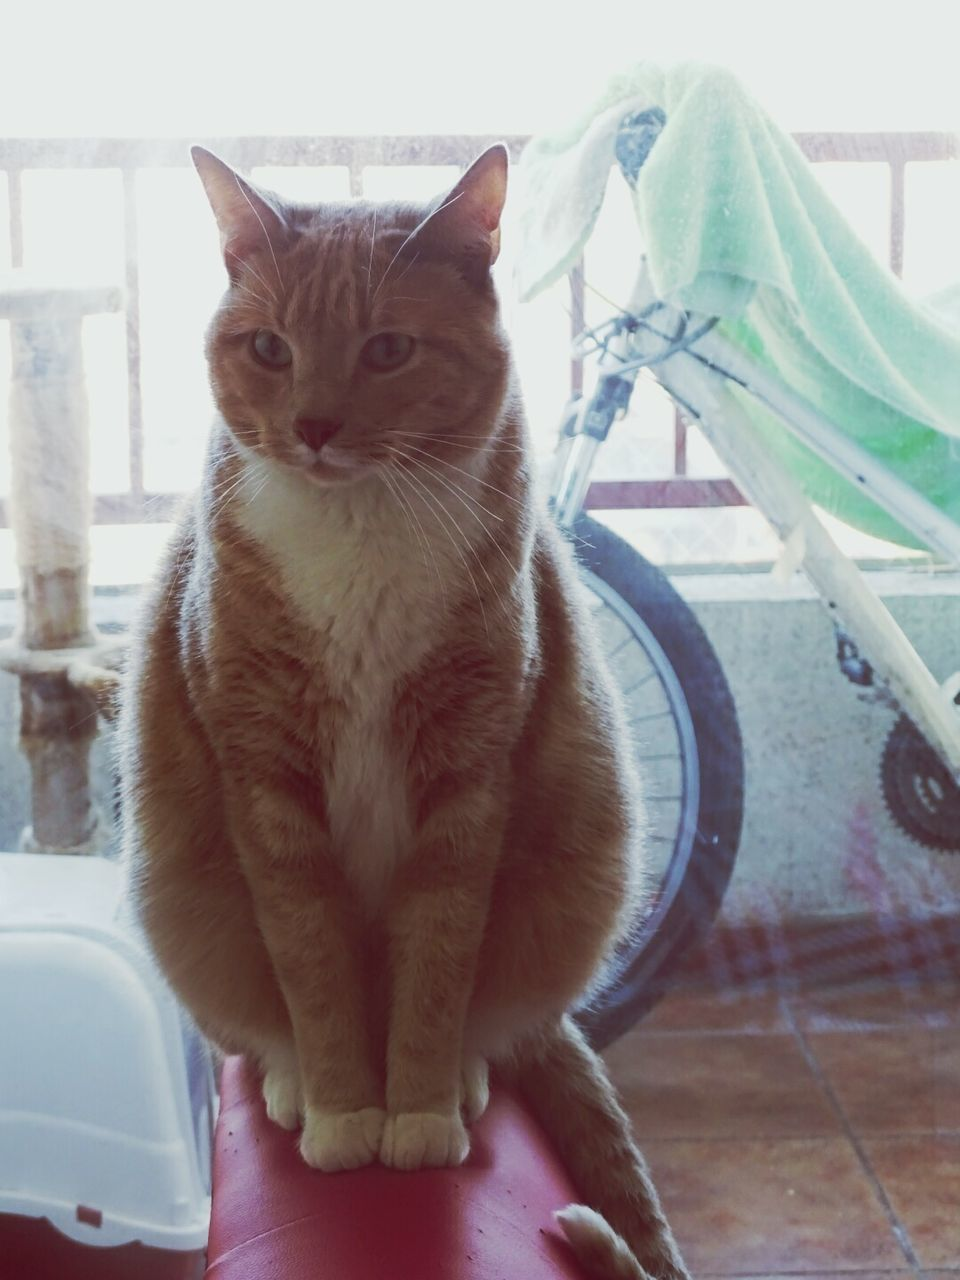 domestic cat, pets, domestic animals, feline, one animal, animal themes, mammal, cat, sitting, indoors, portrait, looking at camera, relaxation, no people, day, ginger cat, close-up